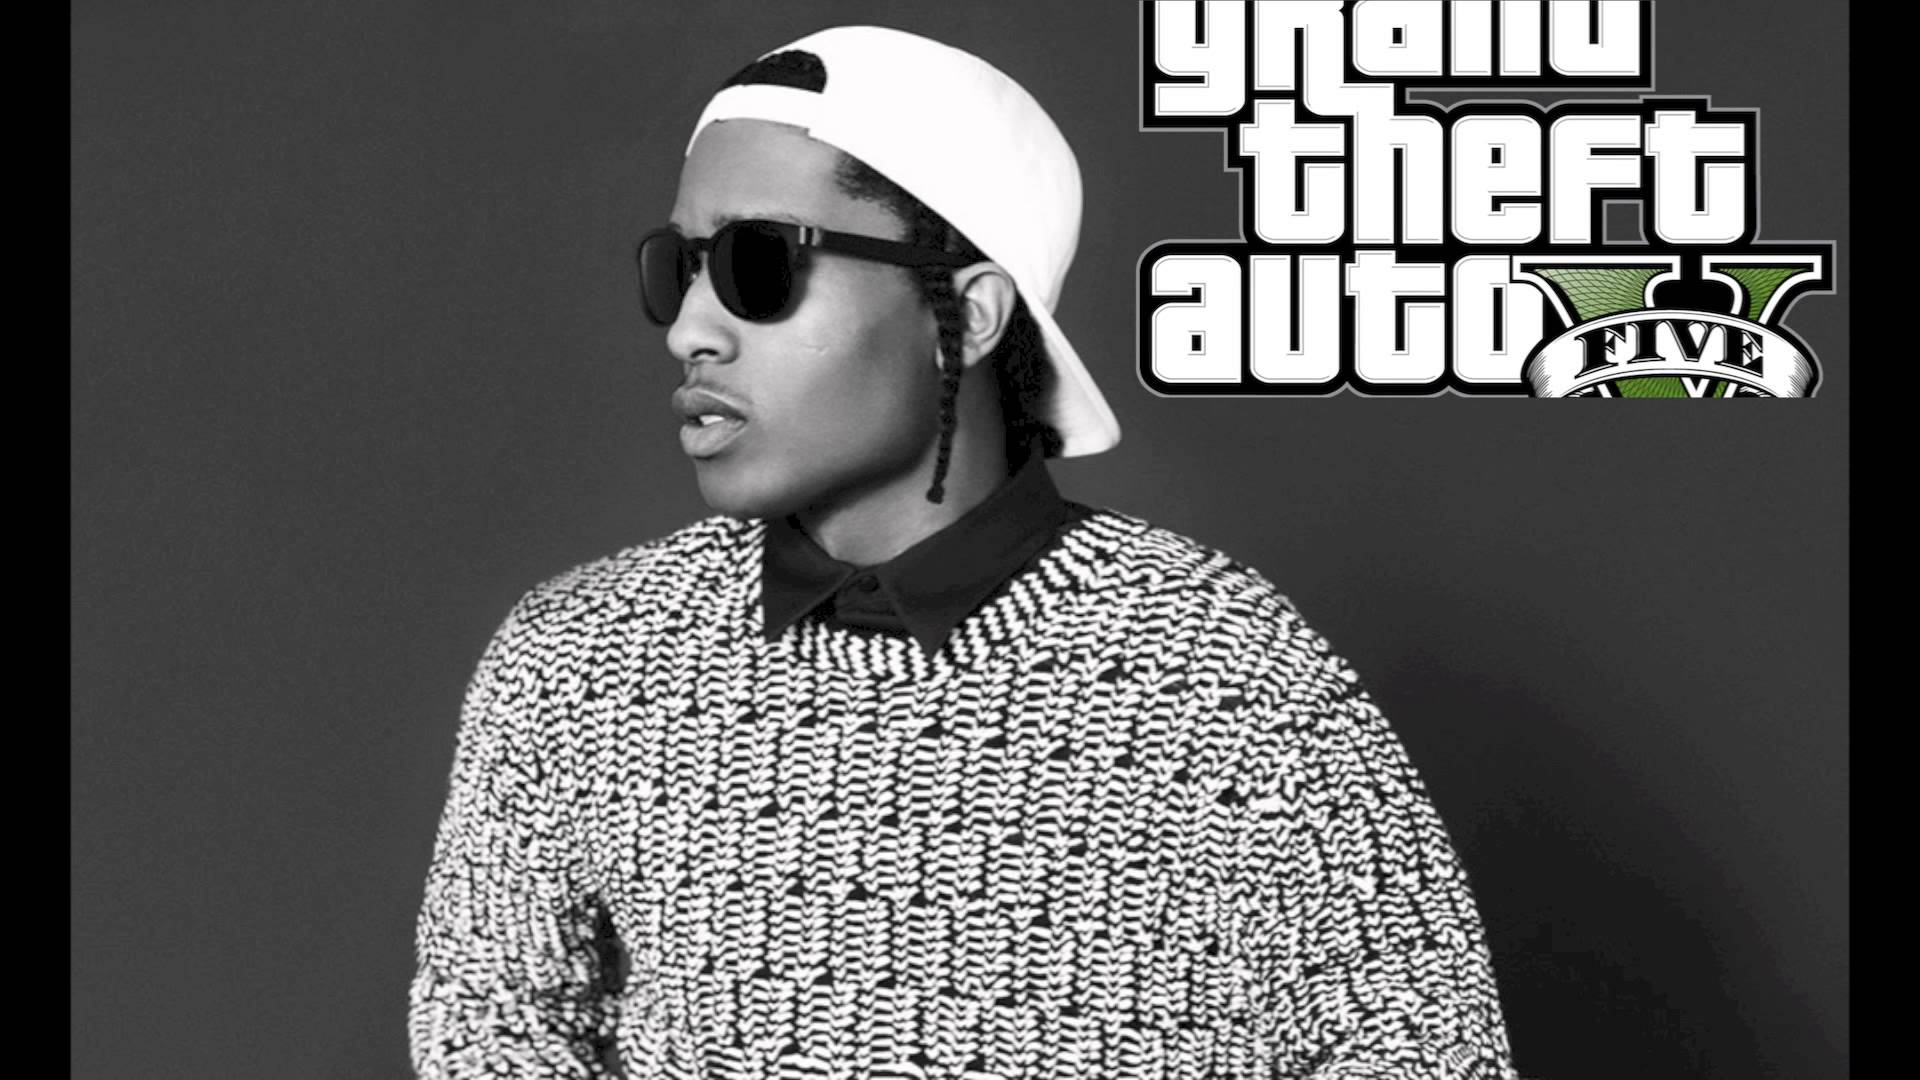 ASAP ROCKY - R CALI (Radio Los Santos) (GTA V MUSIC/SOUNDTRACK) + free download link